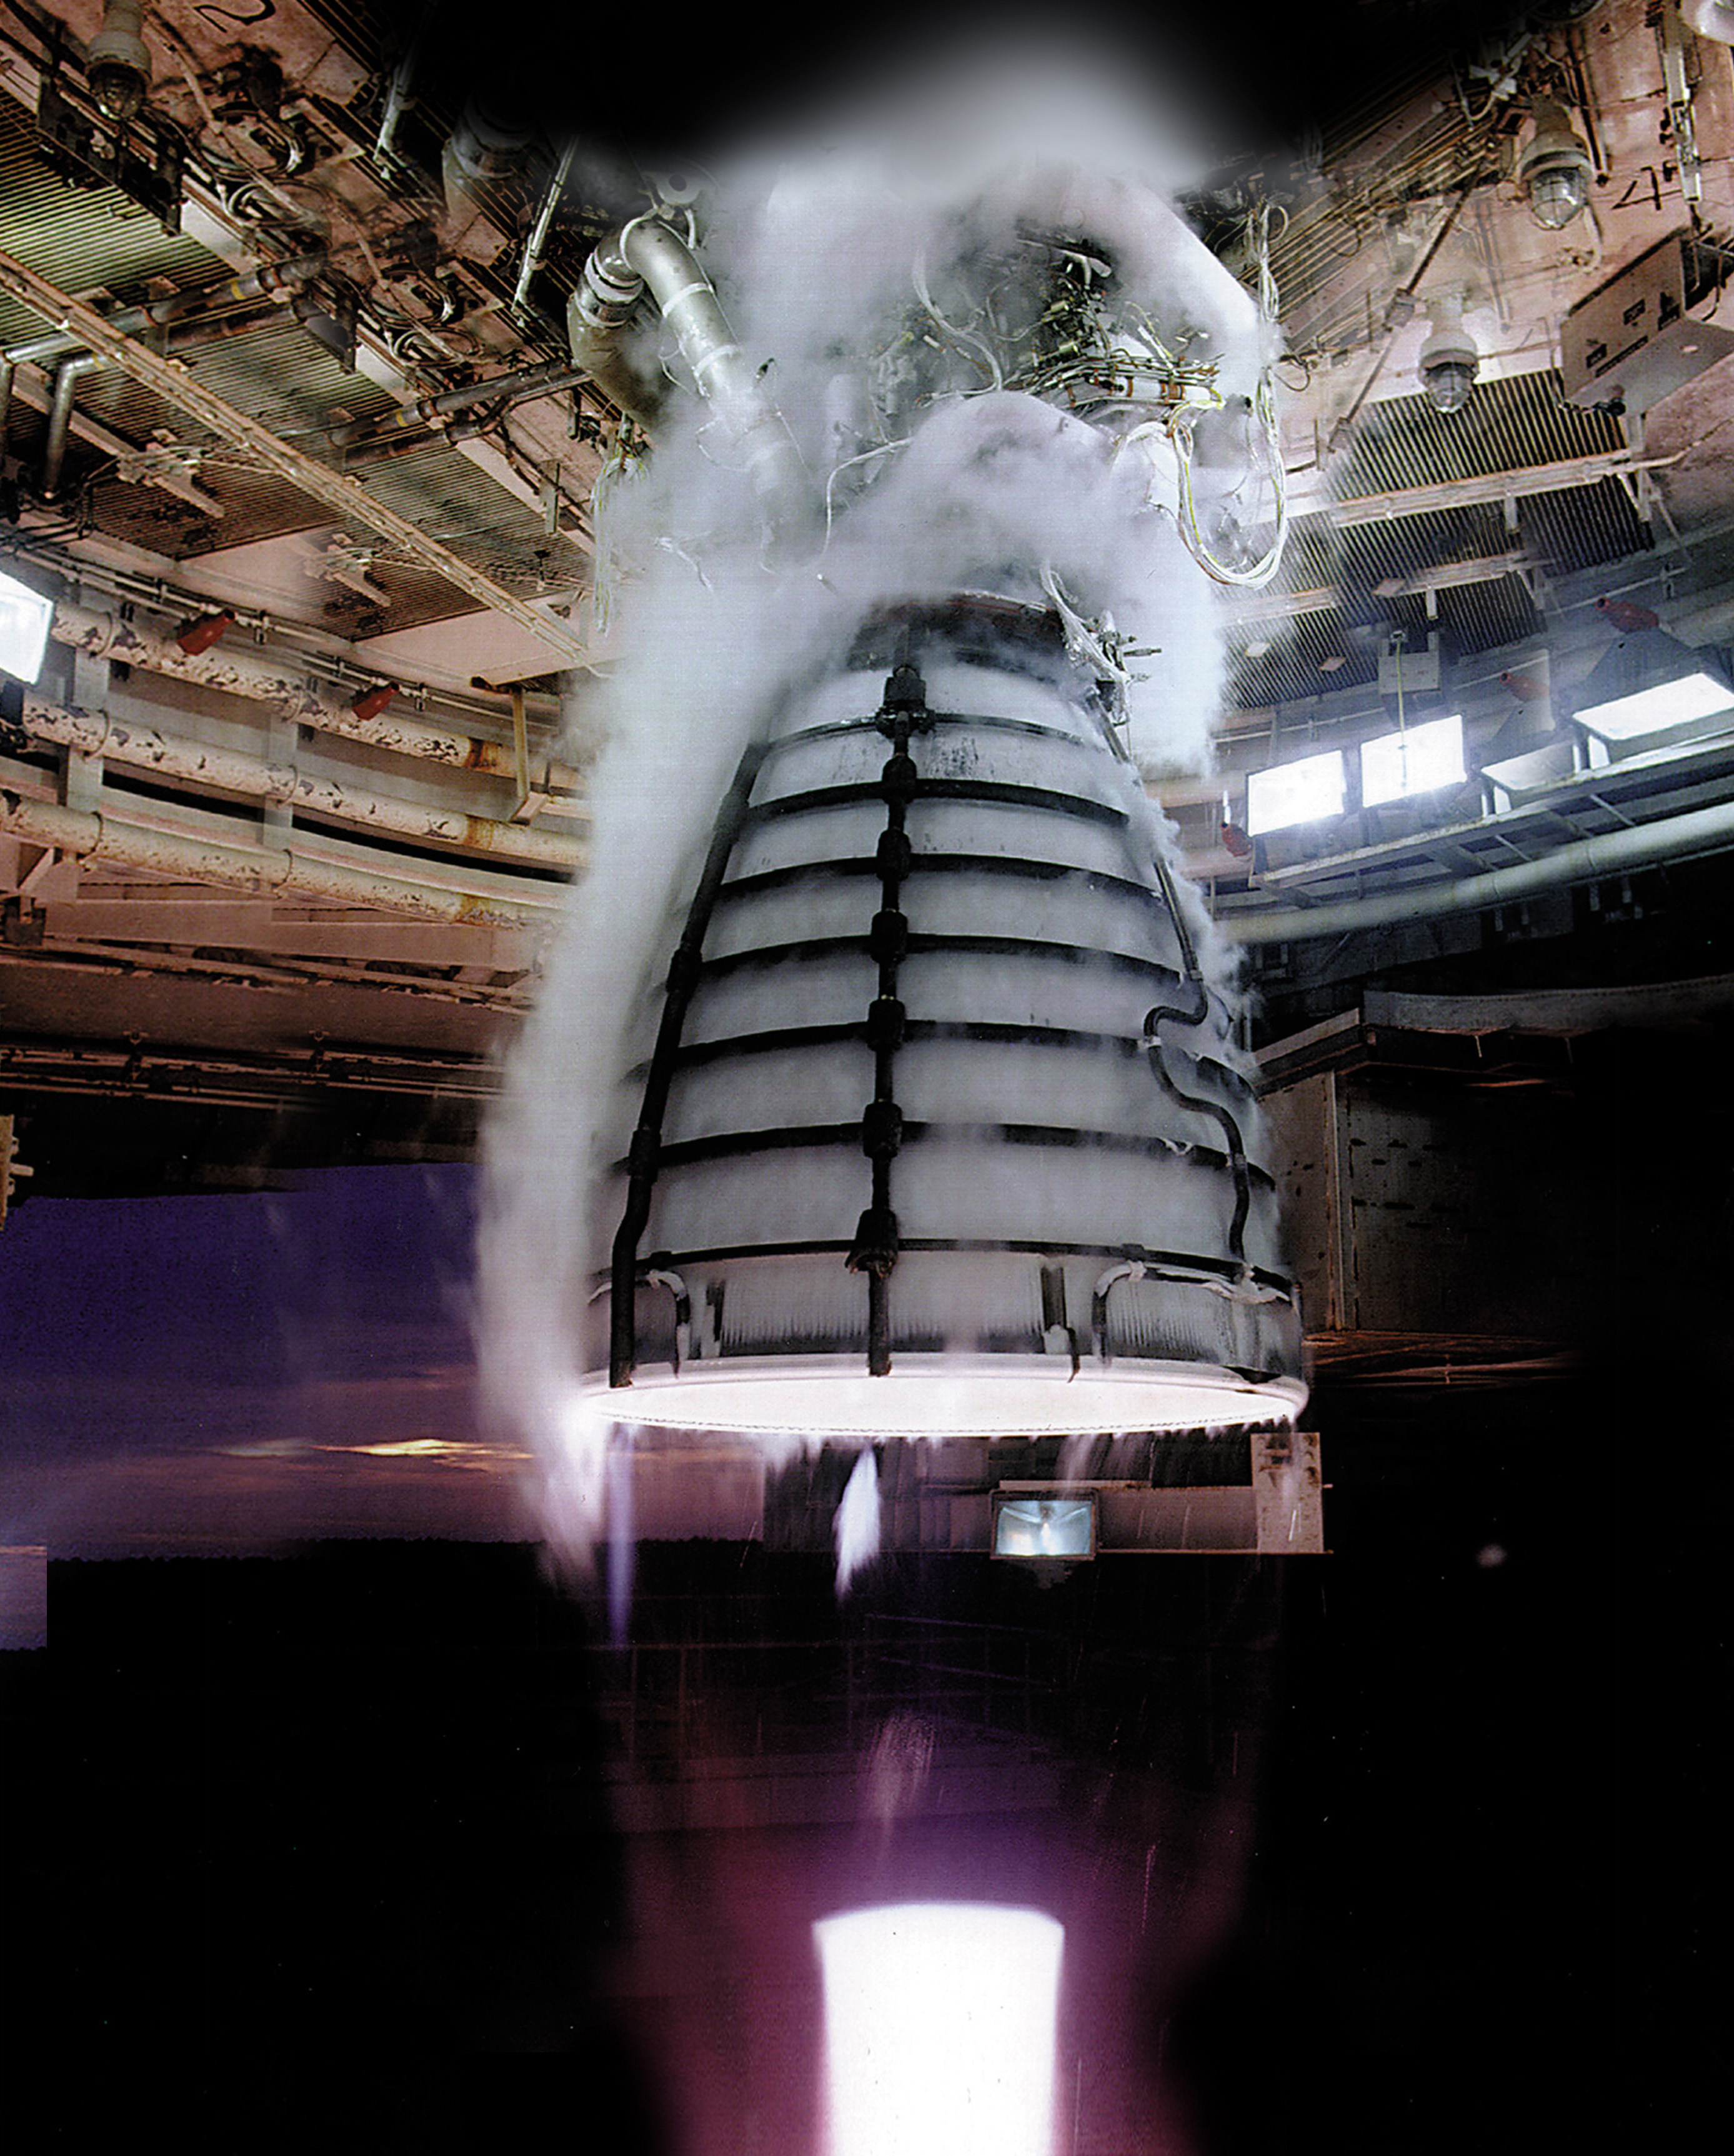 SLS Core Stage Engine: In It for the Long Haul   NASA